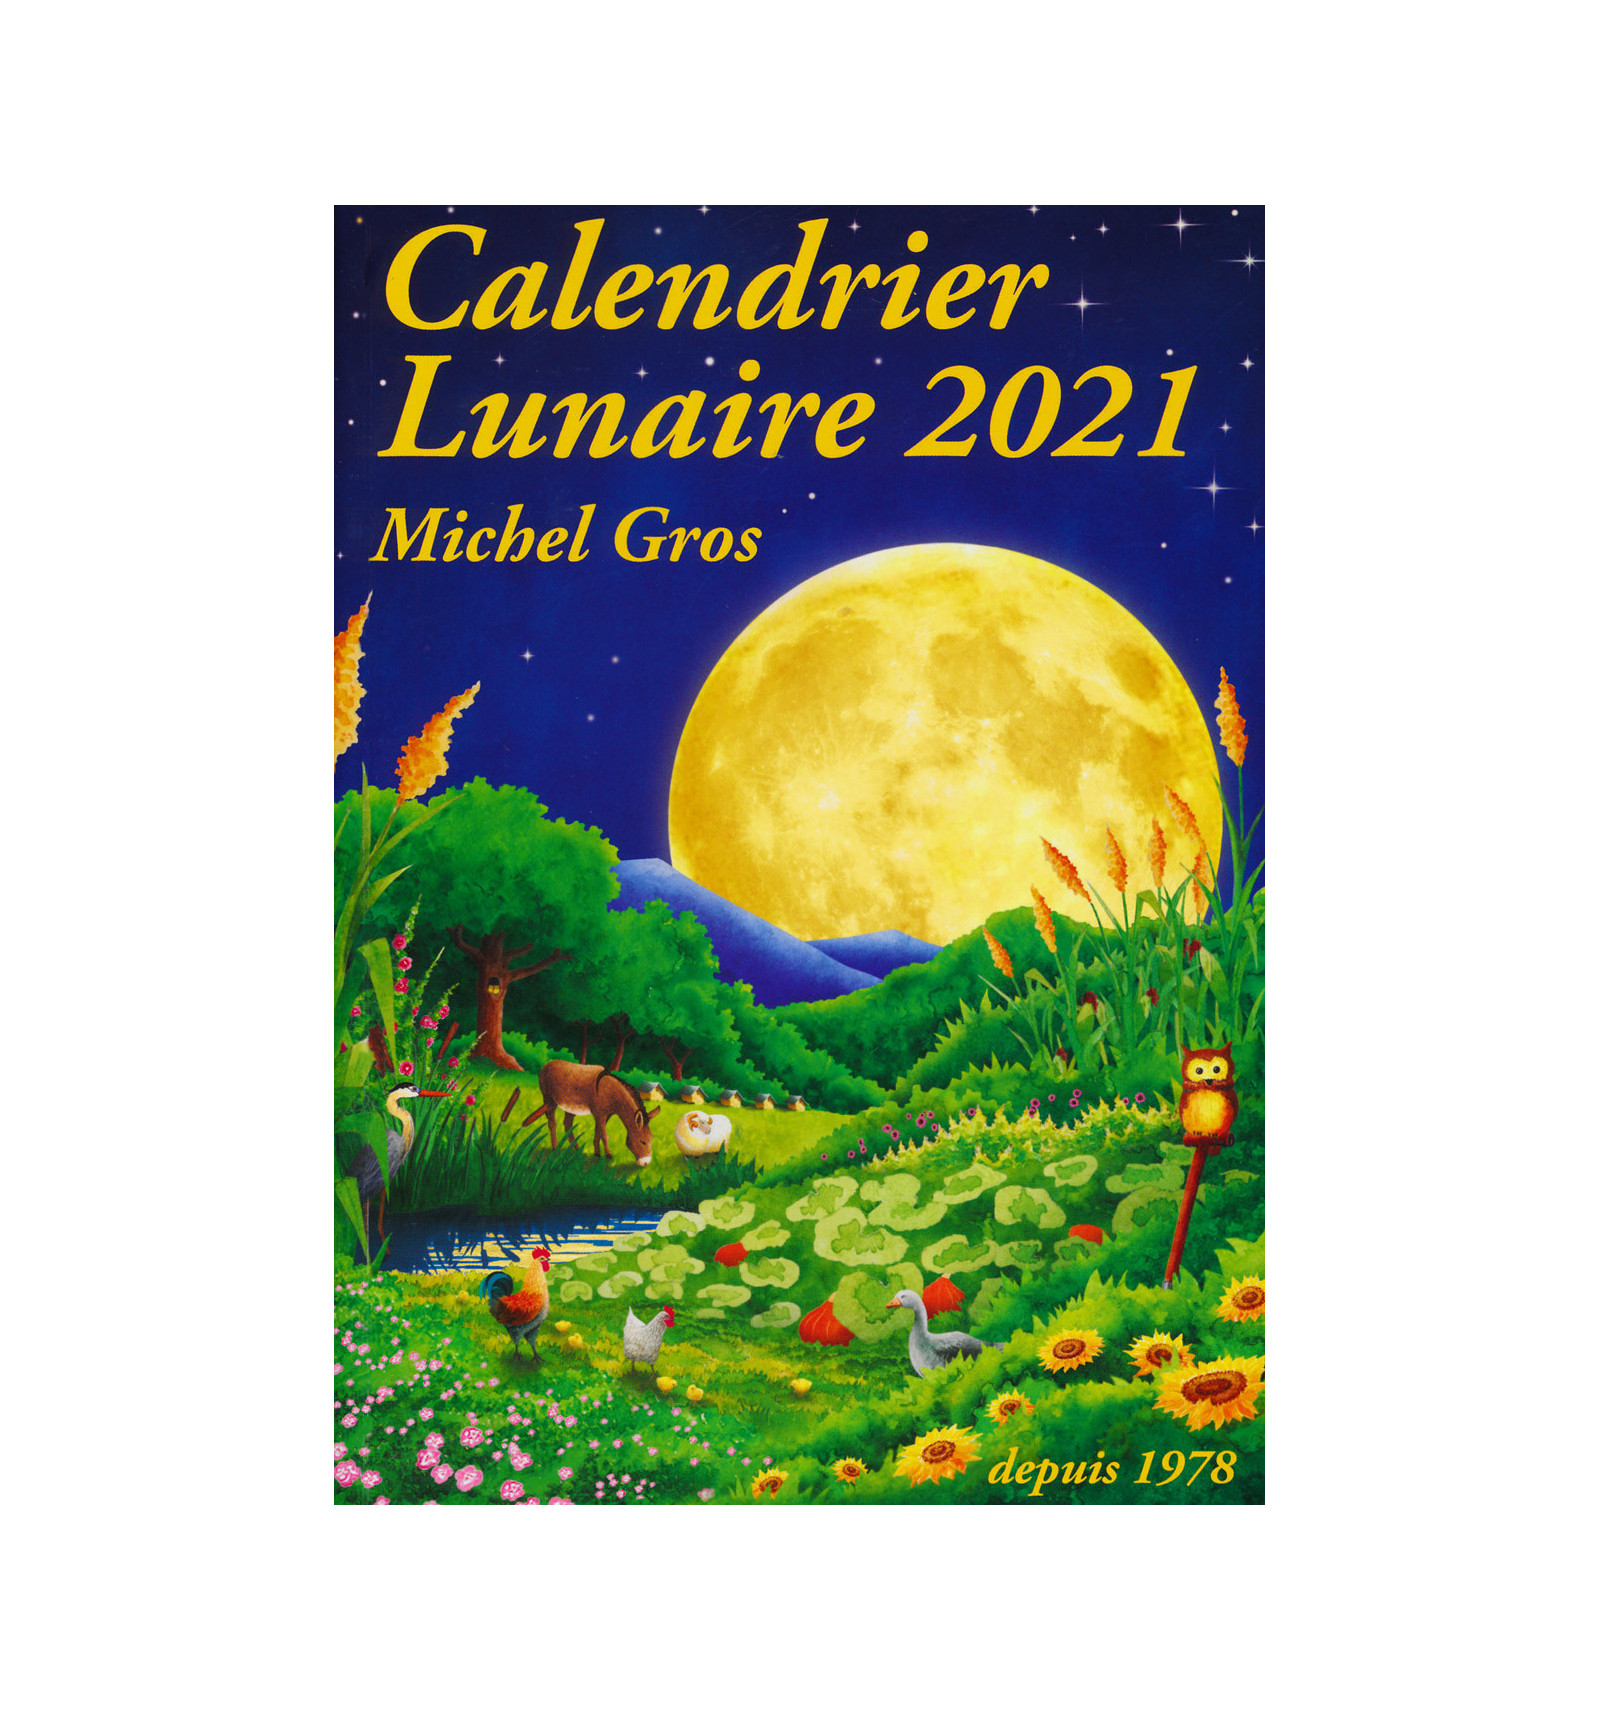 Calendrier Lunaire 2021 Michel Gros CALENDRIER LUNAIRE 2021   MICHEL GROS   DIFFUSION ROSICRUCIENNE